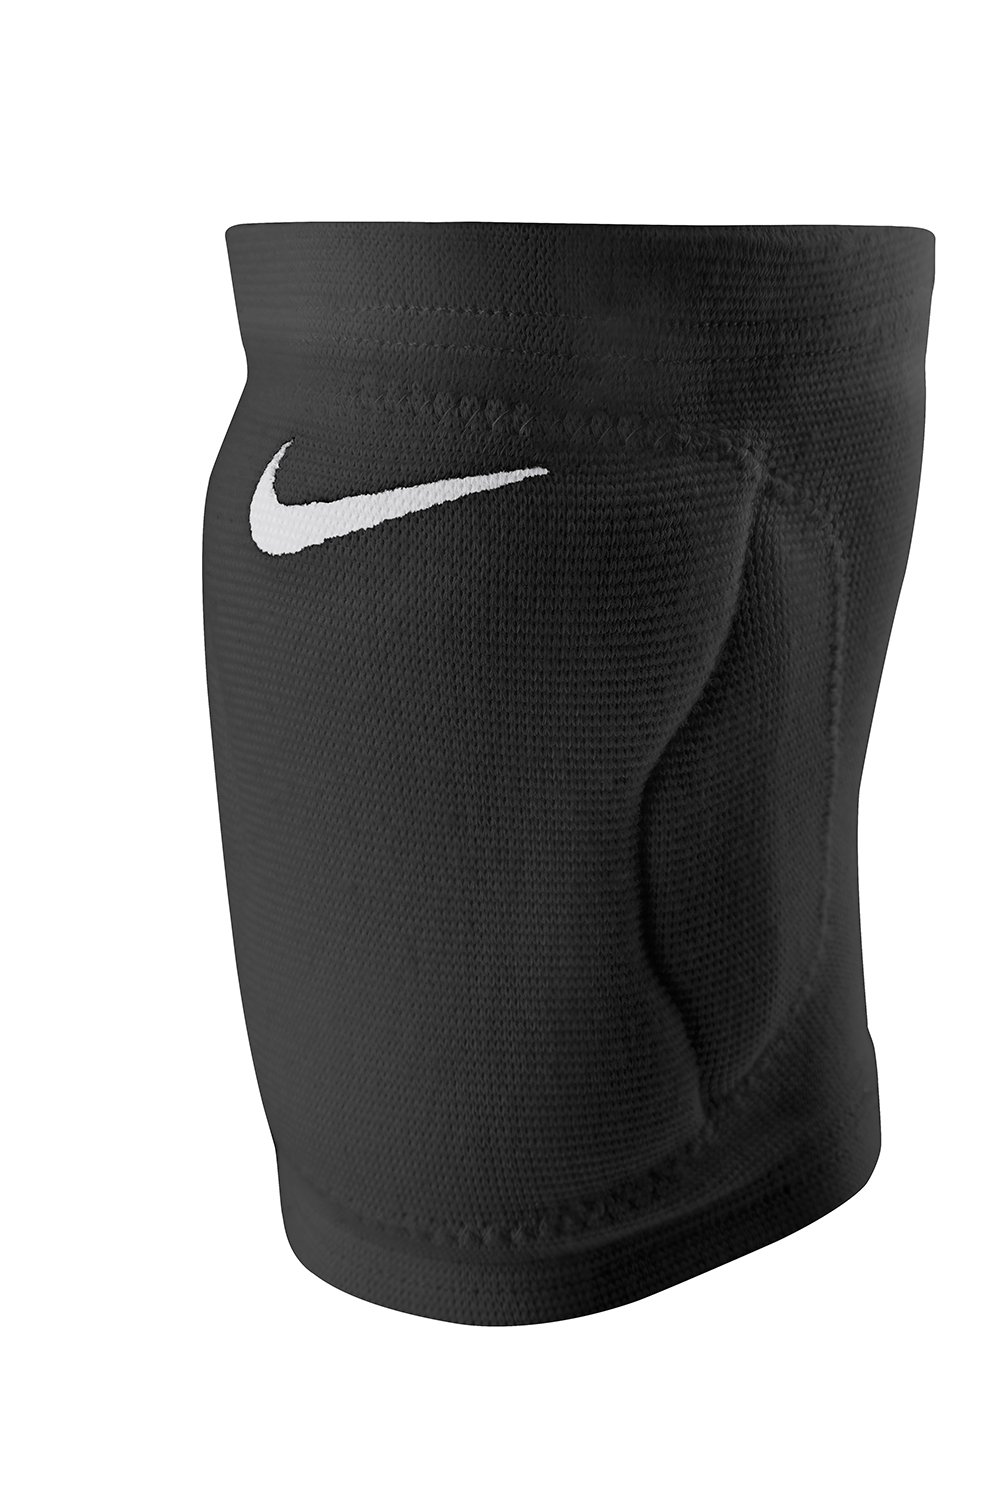 (XL/XXL, 黒) - Nike Streak Volleyball Knee Pad (XL/XXL, 黒)